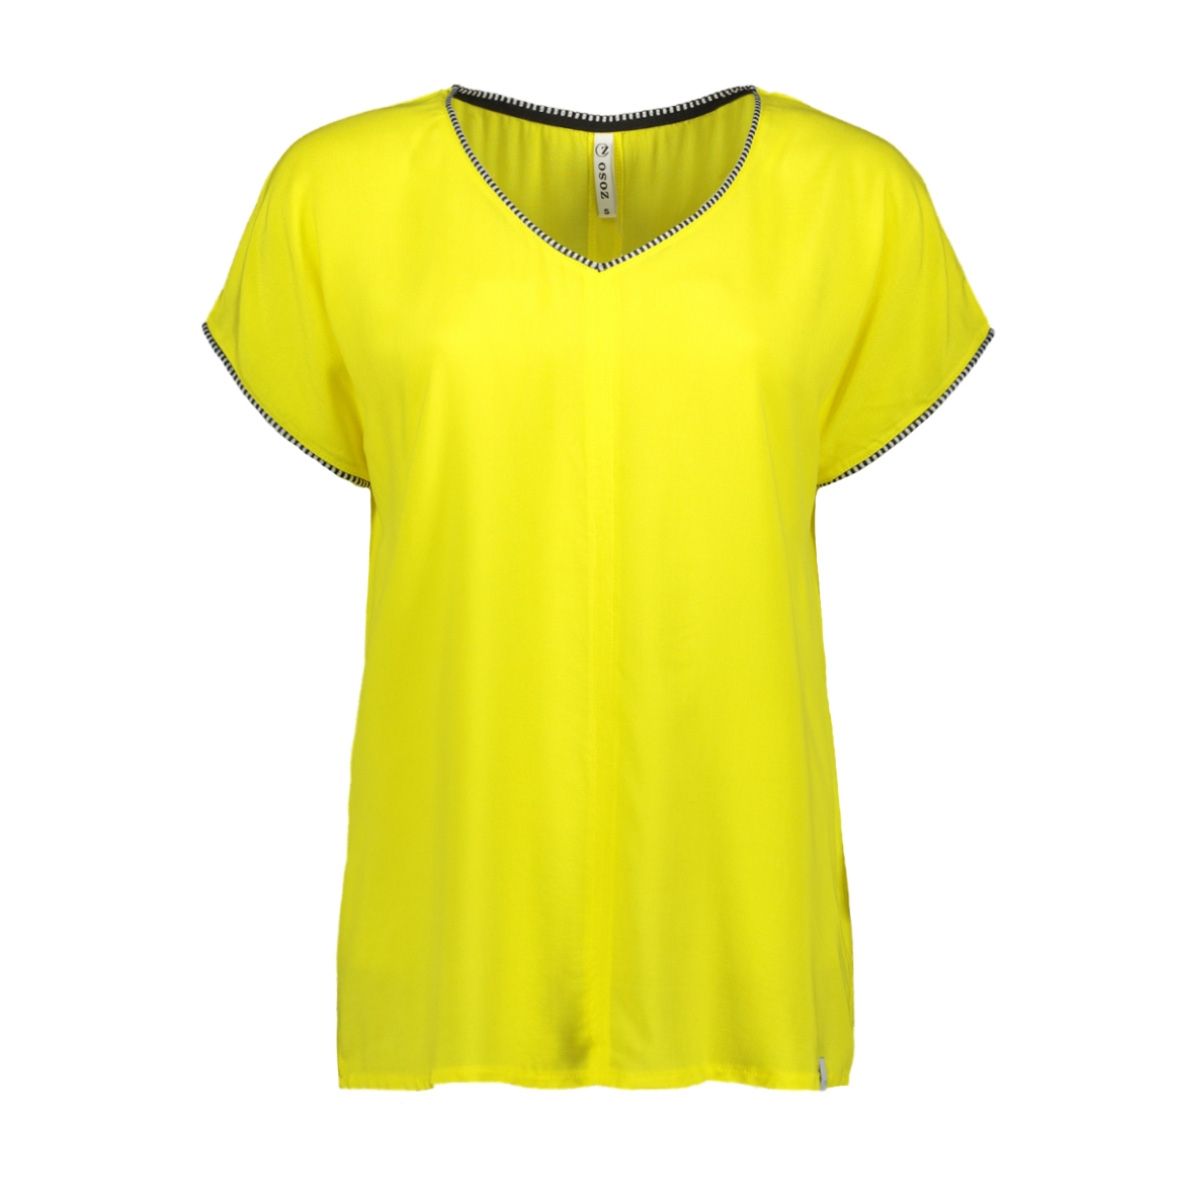 esther shirt with piping 193 zoso t-shirt yellow